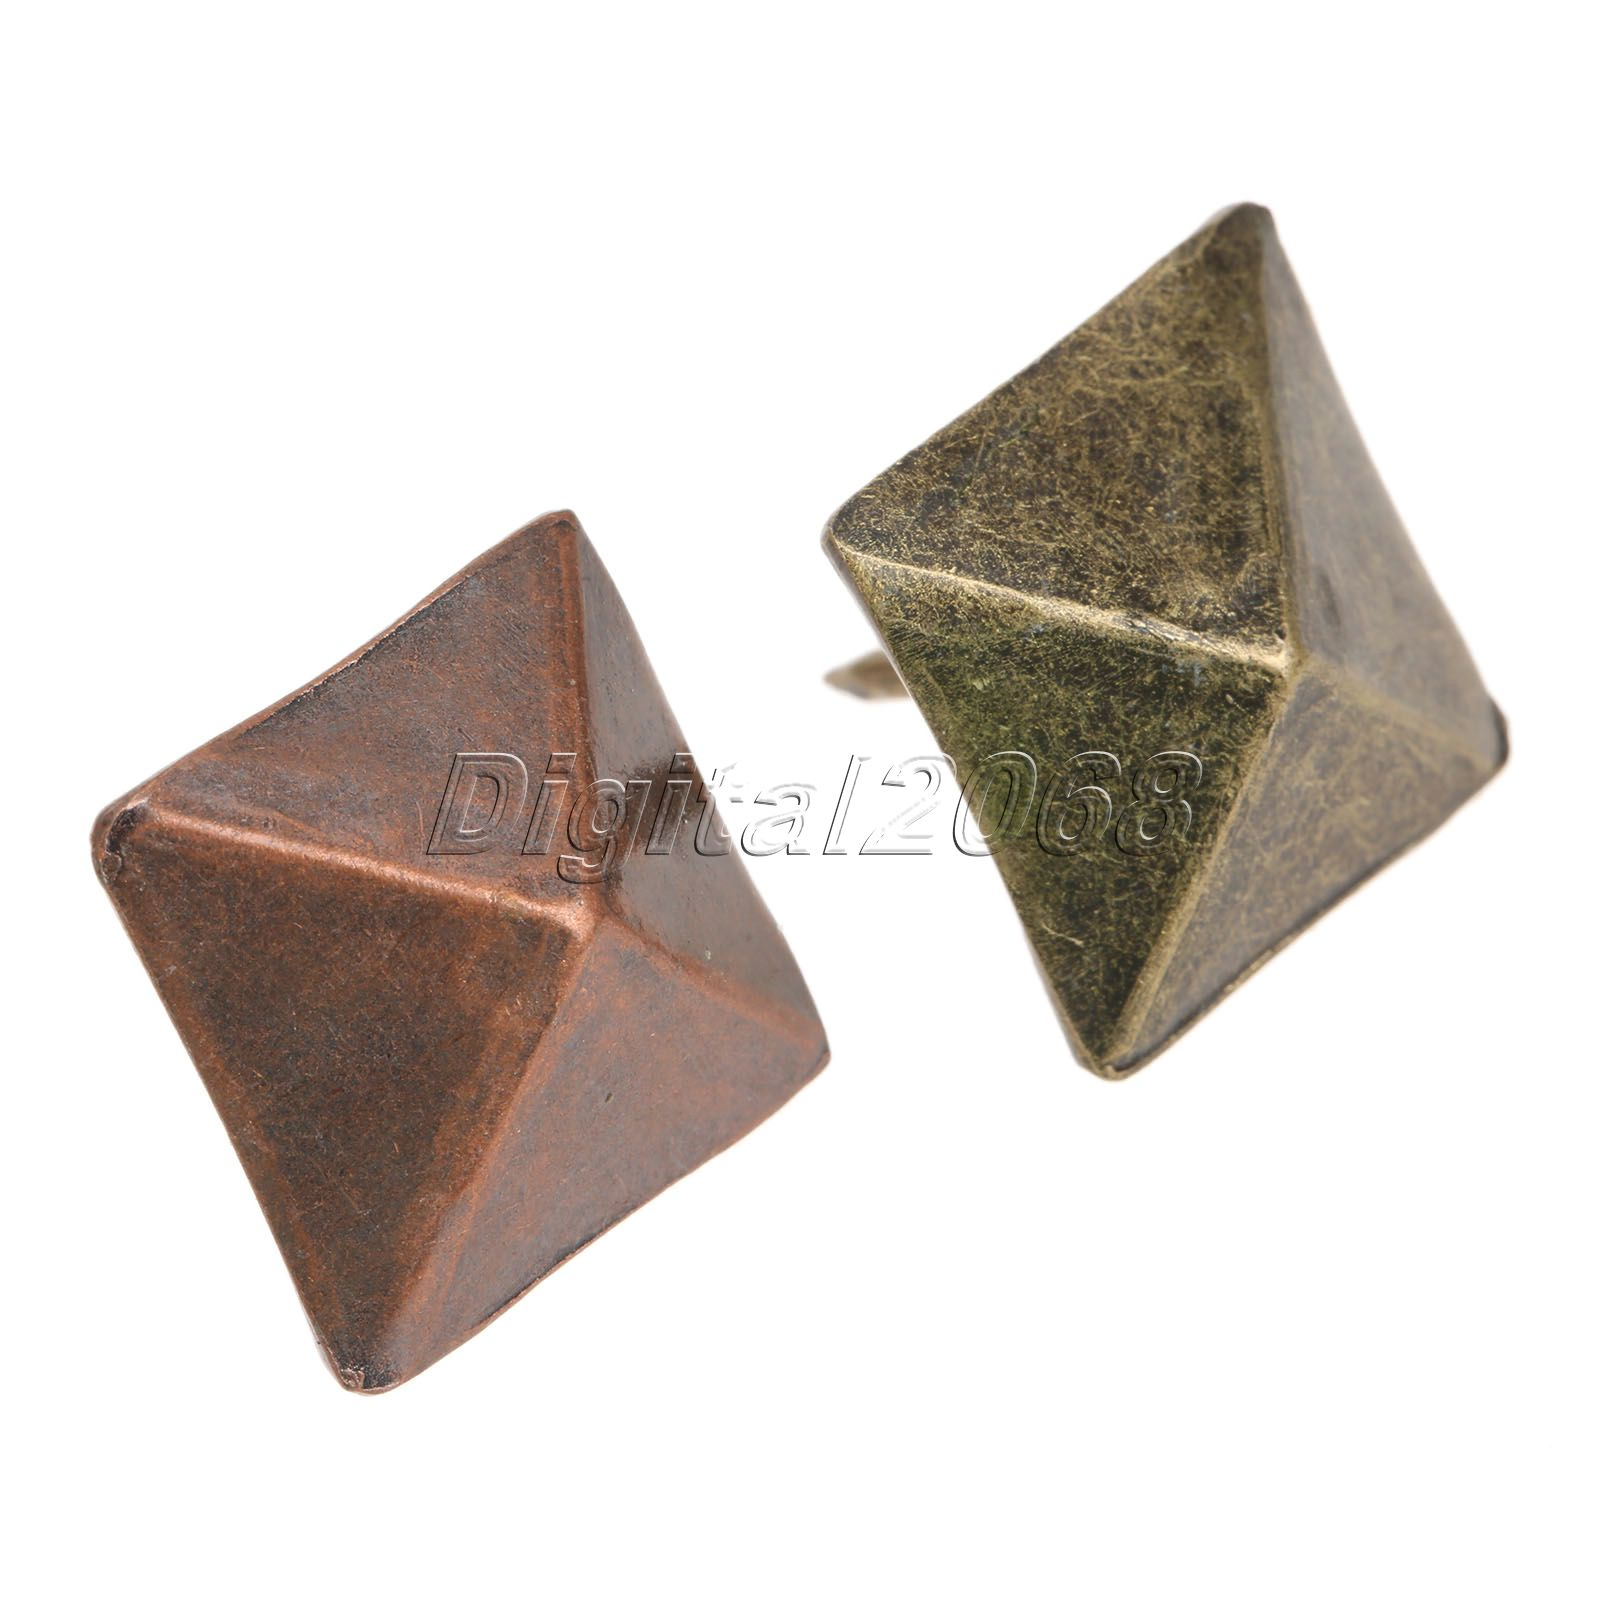 50 Pcs Decorative Upholstery Nail Copper Pyramid Square Rivet Tack For Leather Crafts And Furniture 19x19x21mm(China (Mainland))